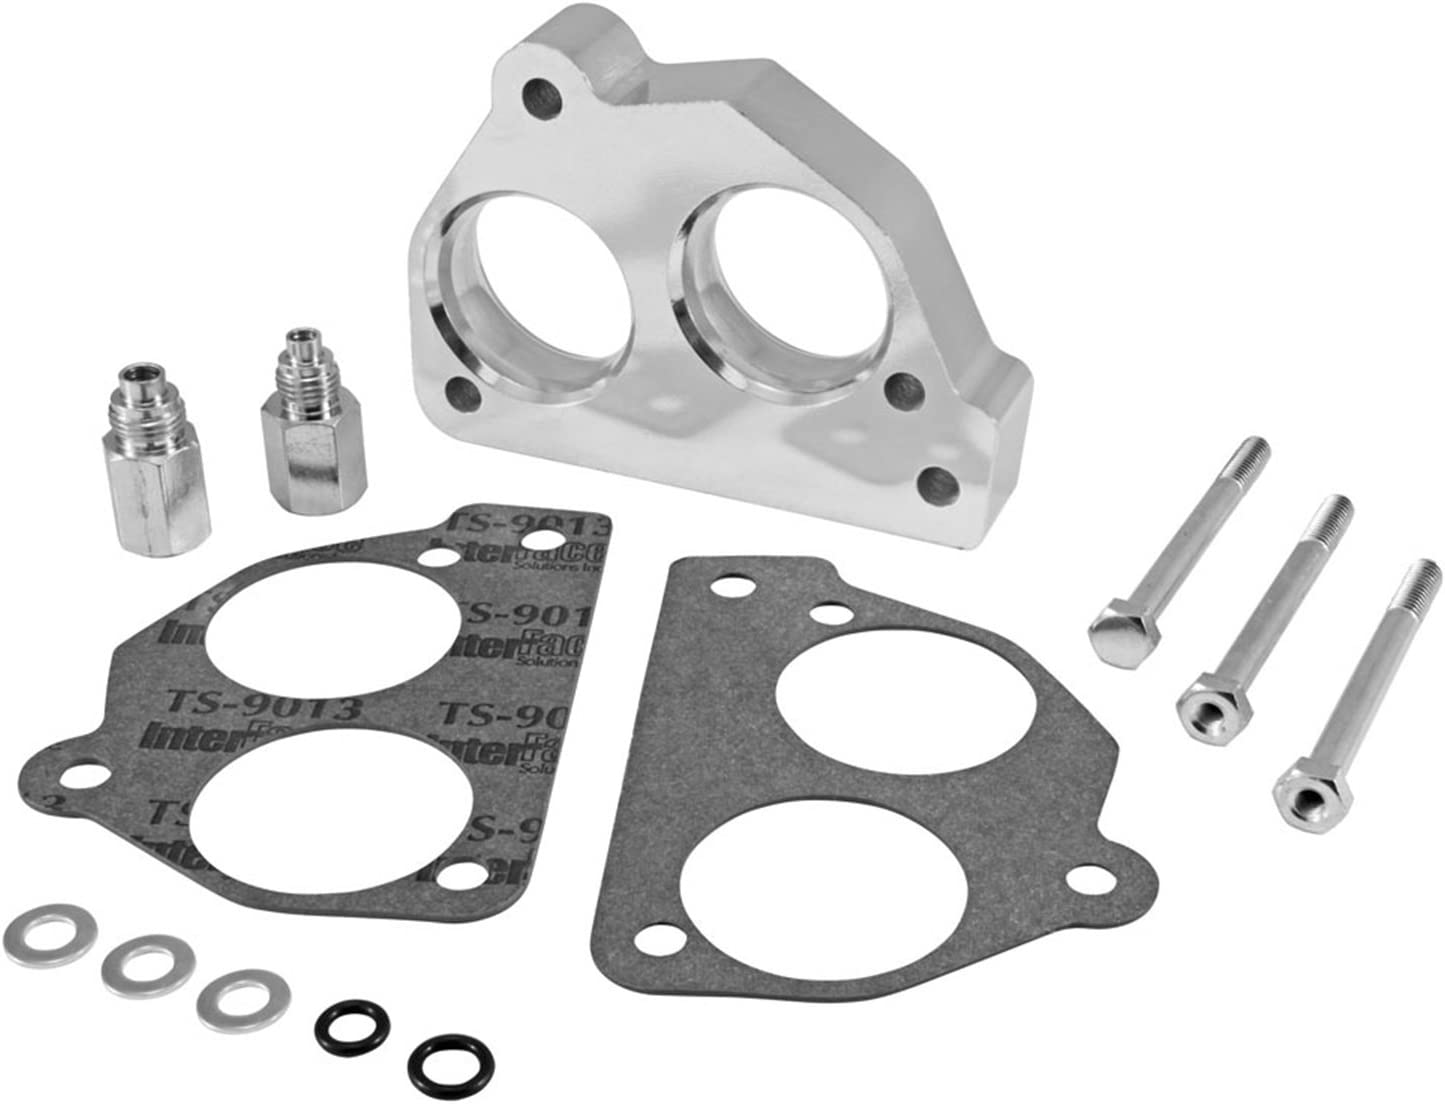 Spectre Performance 11253 Throttle Body 7.4L Free Inexpensive Shipping Cheap Bargain Gift 198 Truck GM Spacer